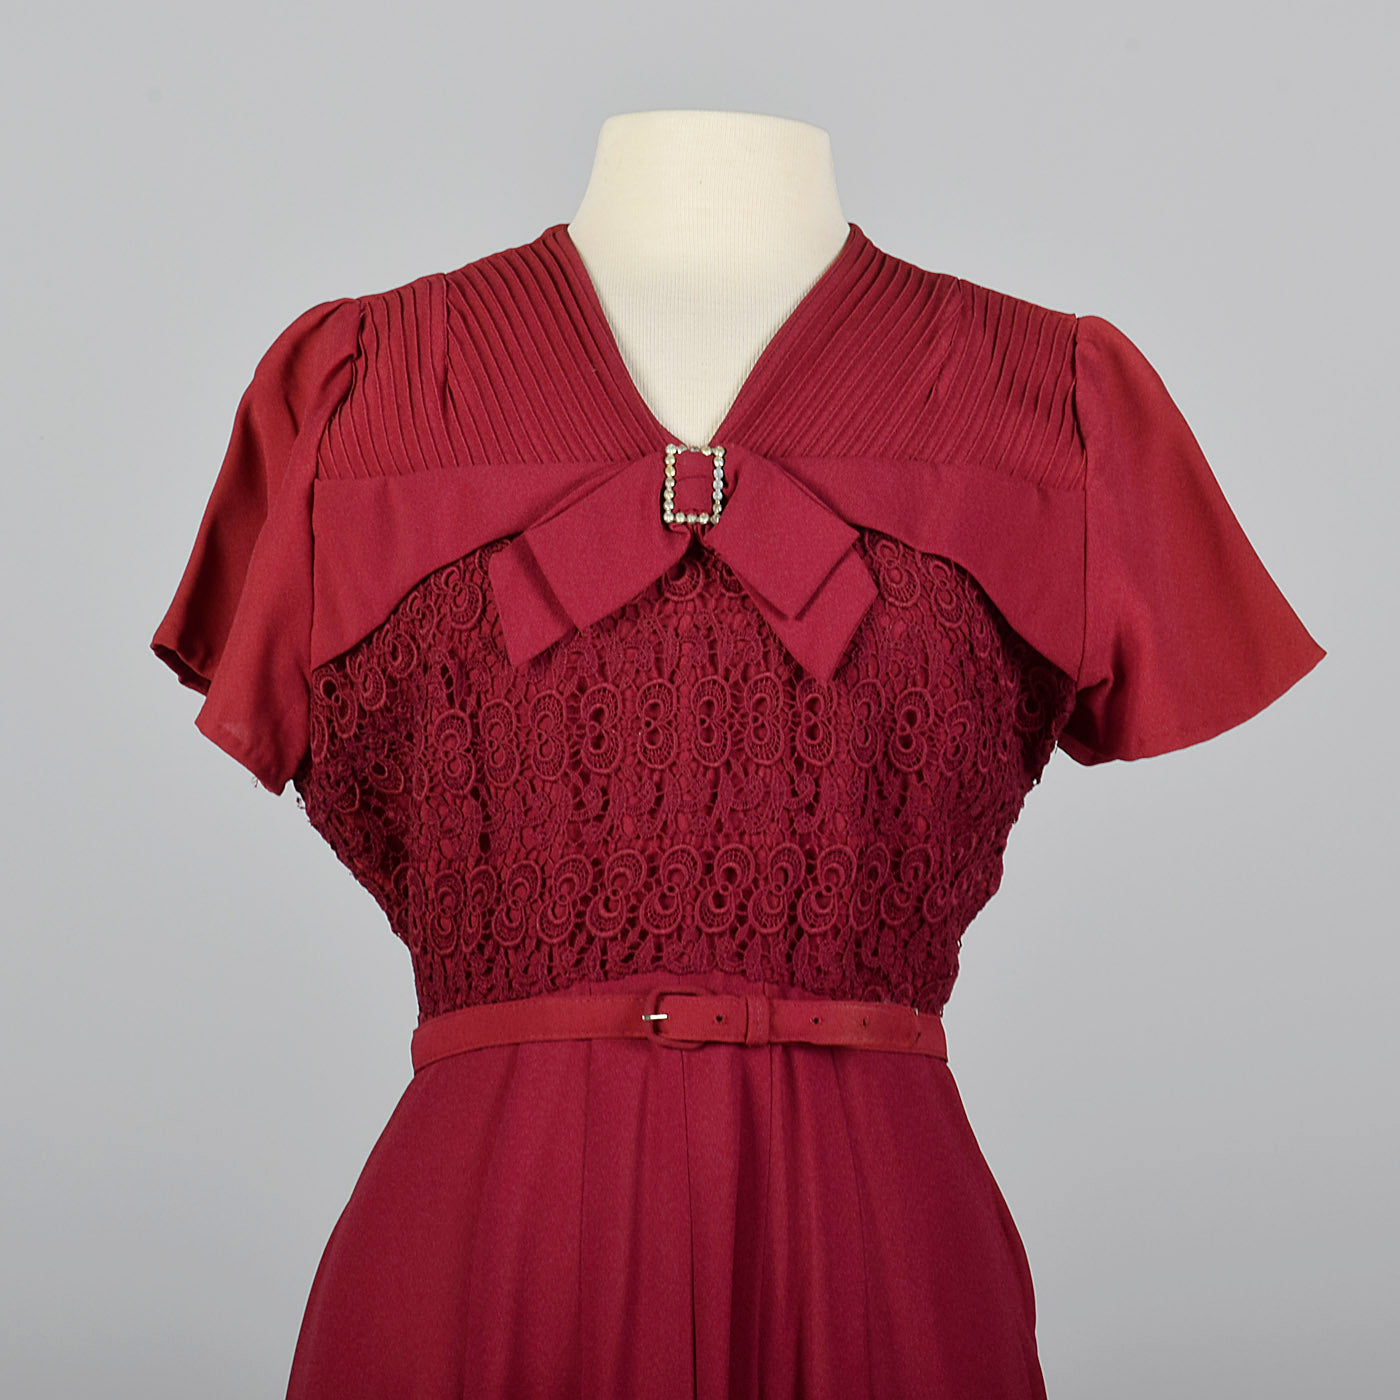 1950s Burgundy Dress with Lace Overlay